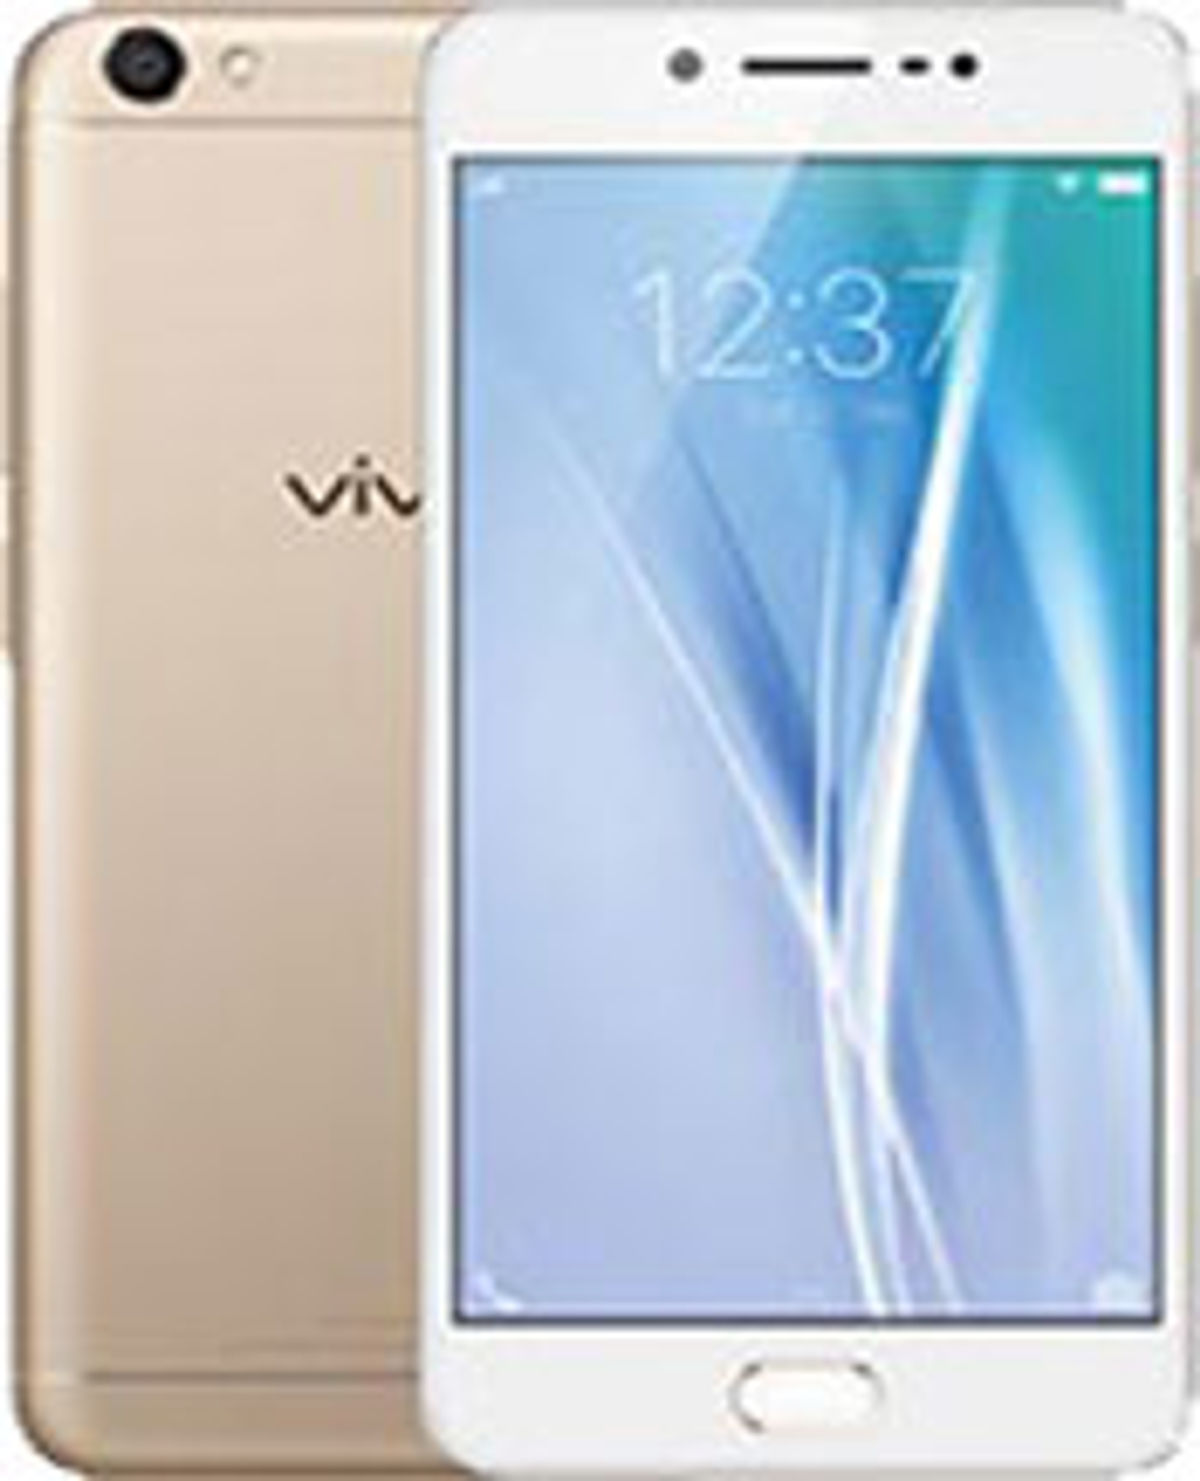 Best Vivo Phones Under 15000 - September 2019 in India